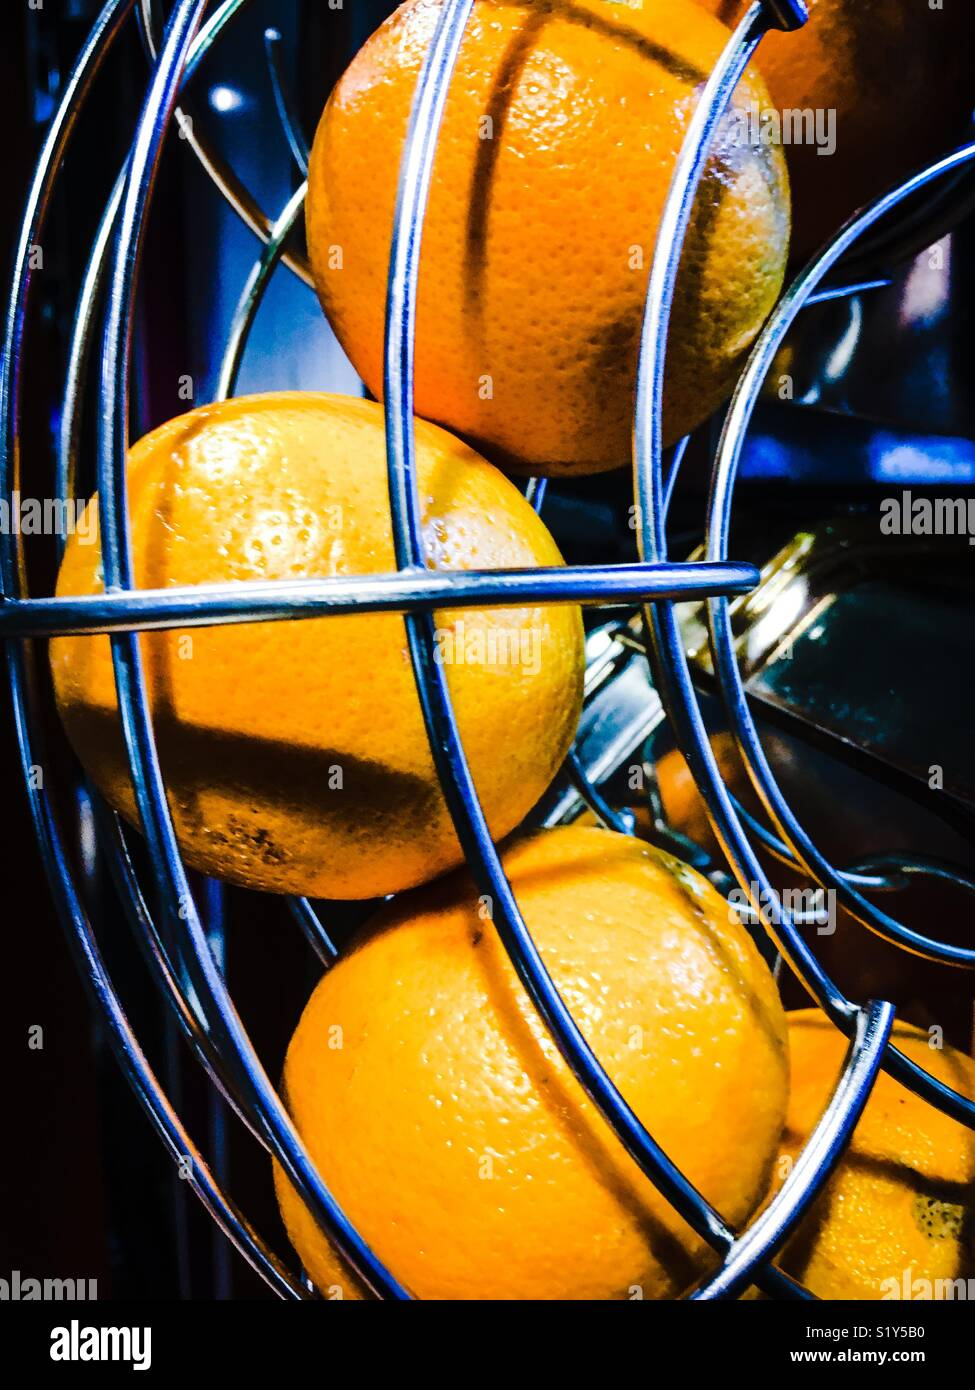 Oranges in Juicer Stock Photo